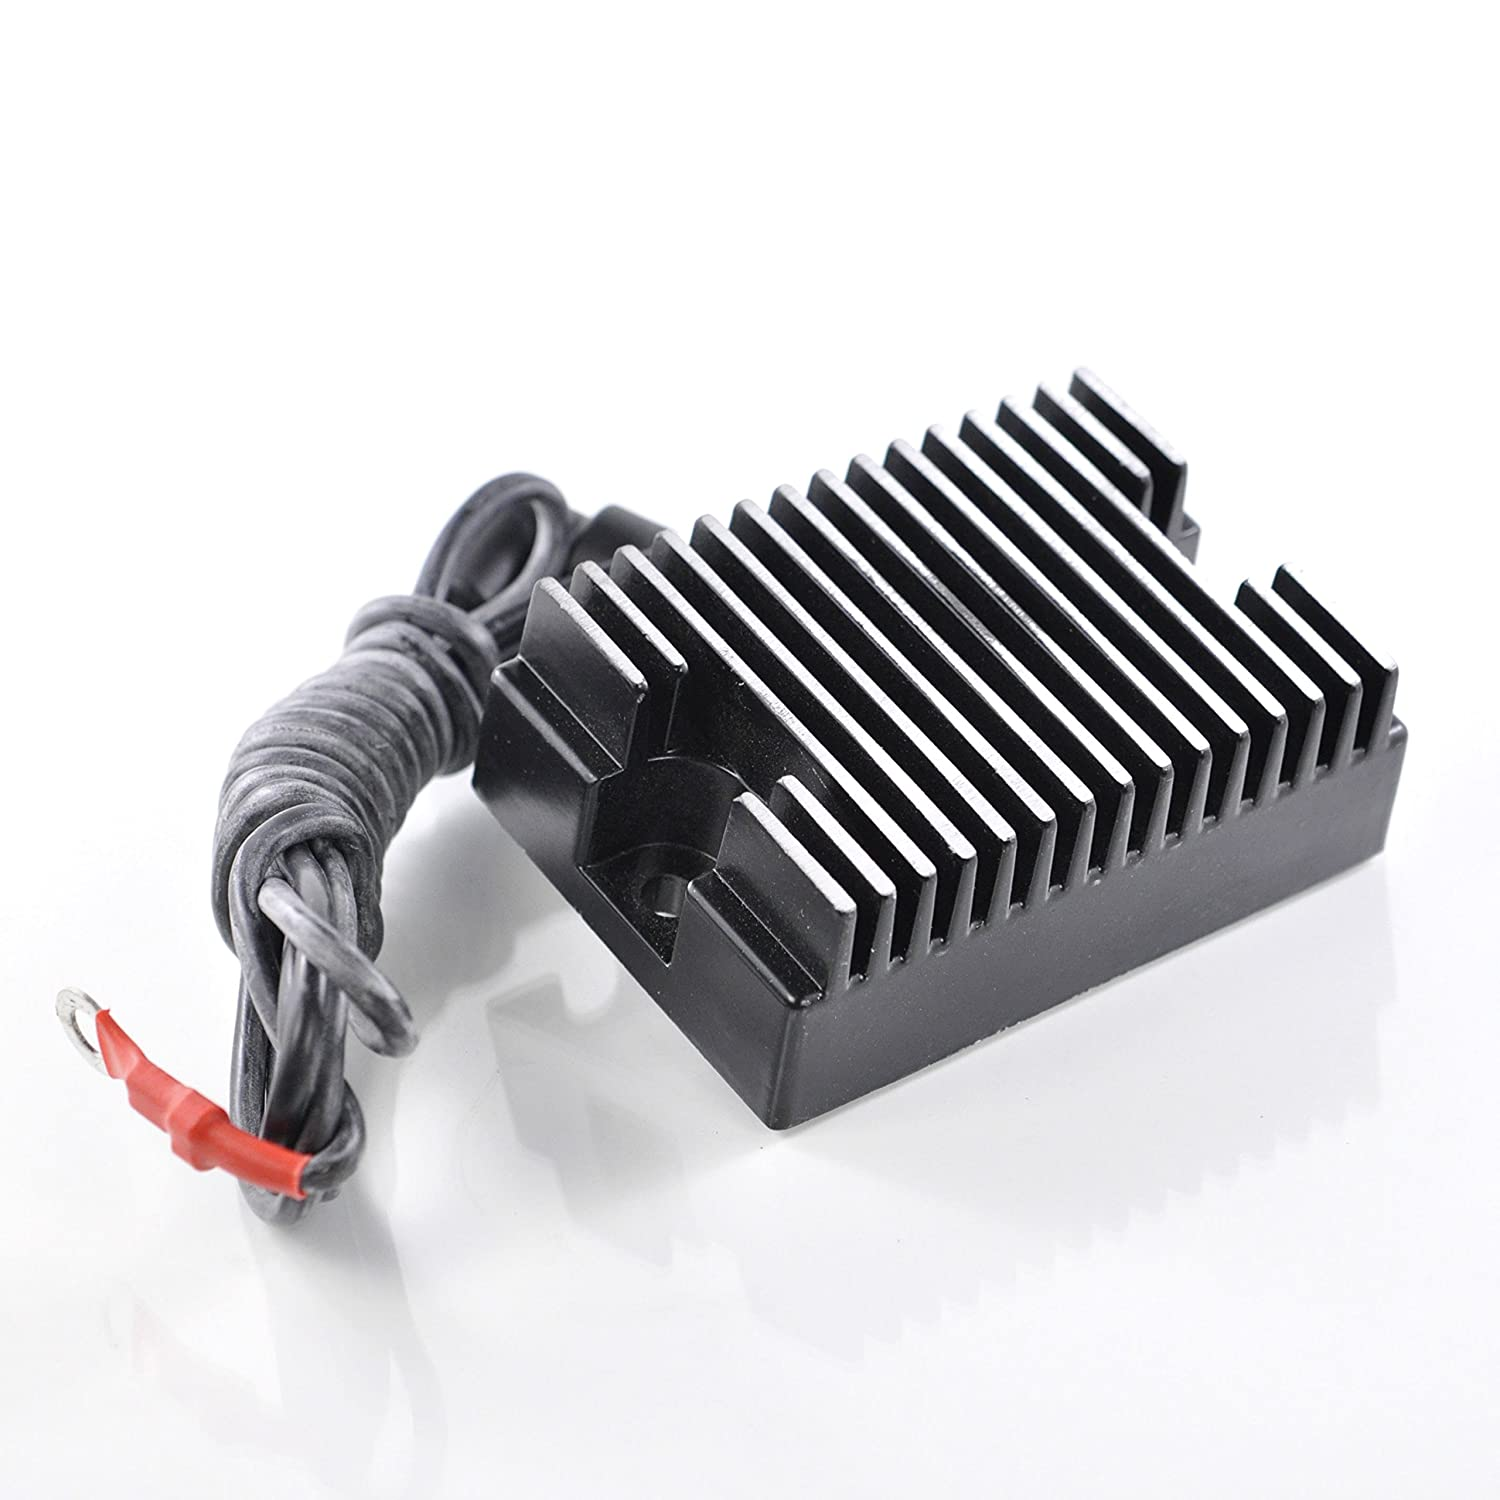 Mosfet Voltage Regulator Rectifier For Harley Davidson Dyna Electra Glide Fat Boy Heritage Low Rider 1340 1991-1999 RaceTech Electric